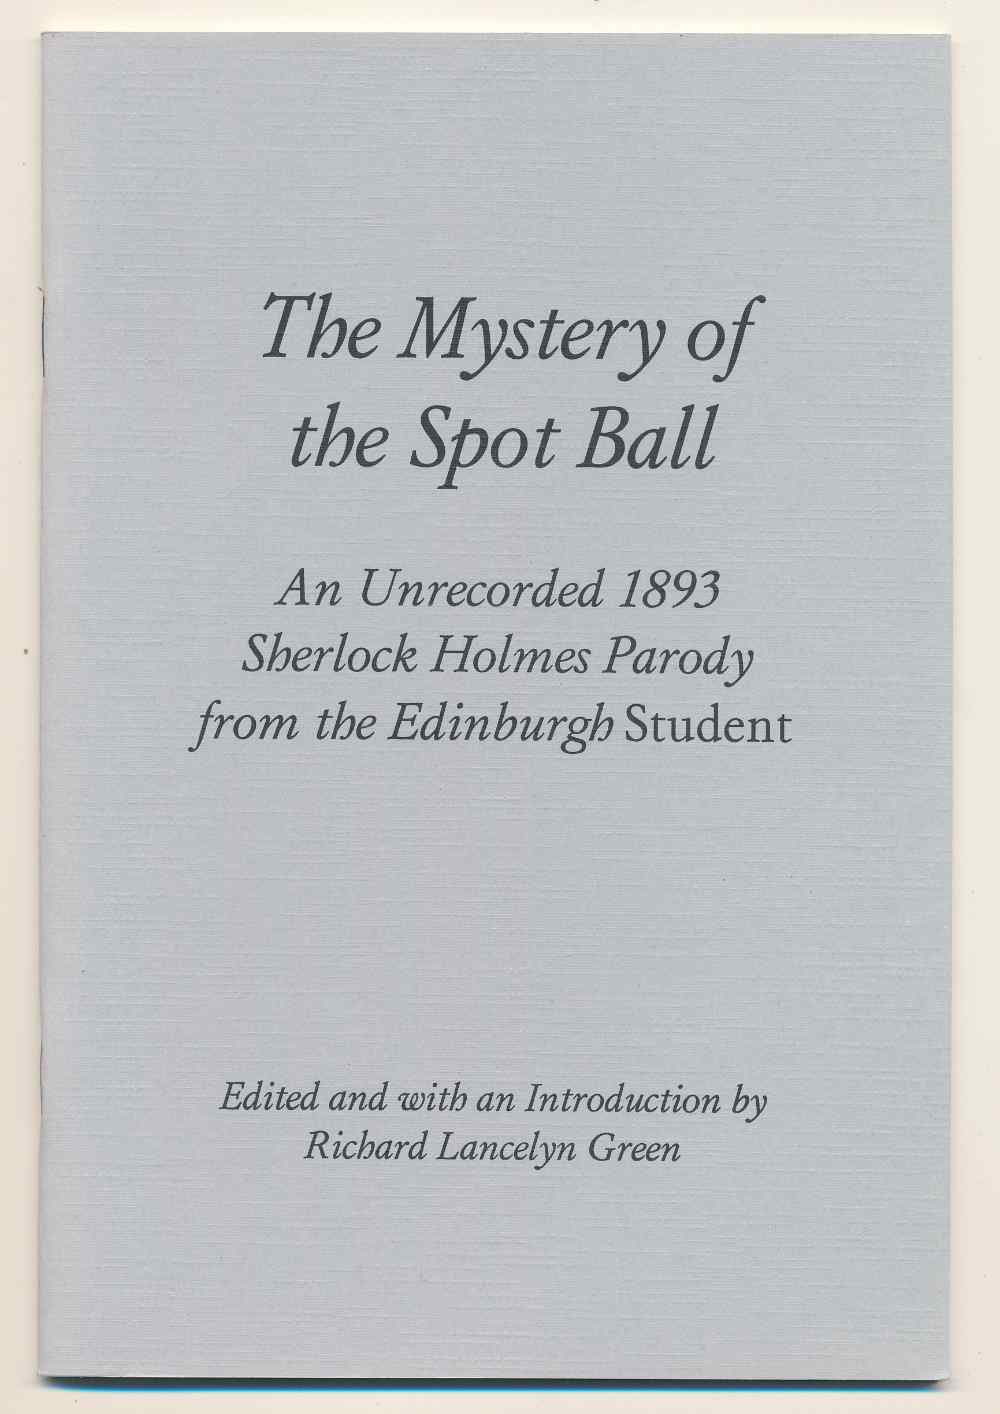 The mystery of the spot ball : an unrecorded 1893 Sherlock Holmes parody from the Edinburgh Student